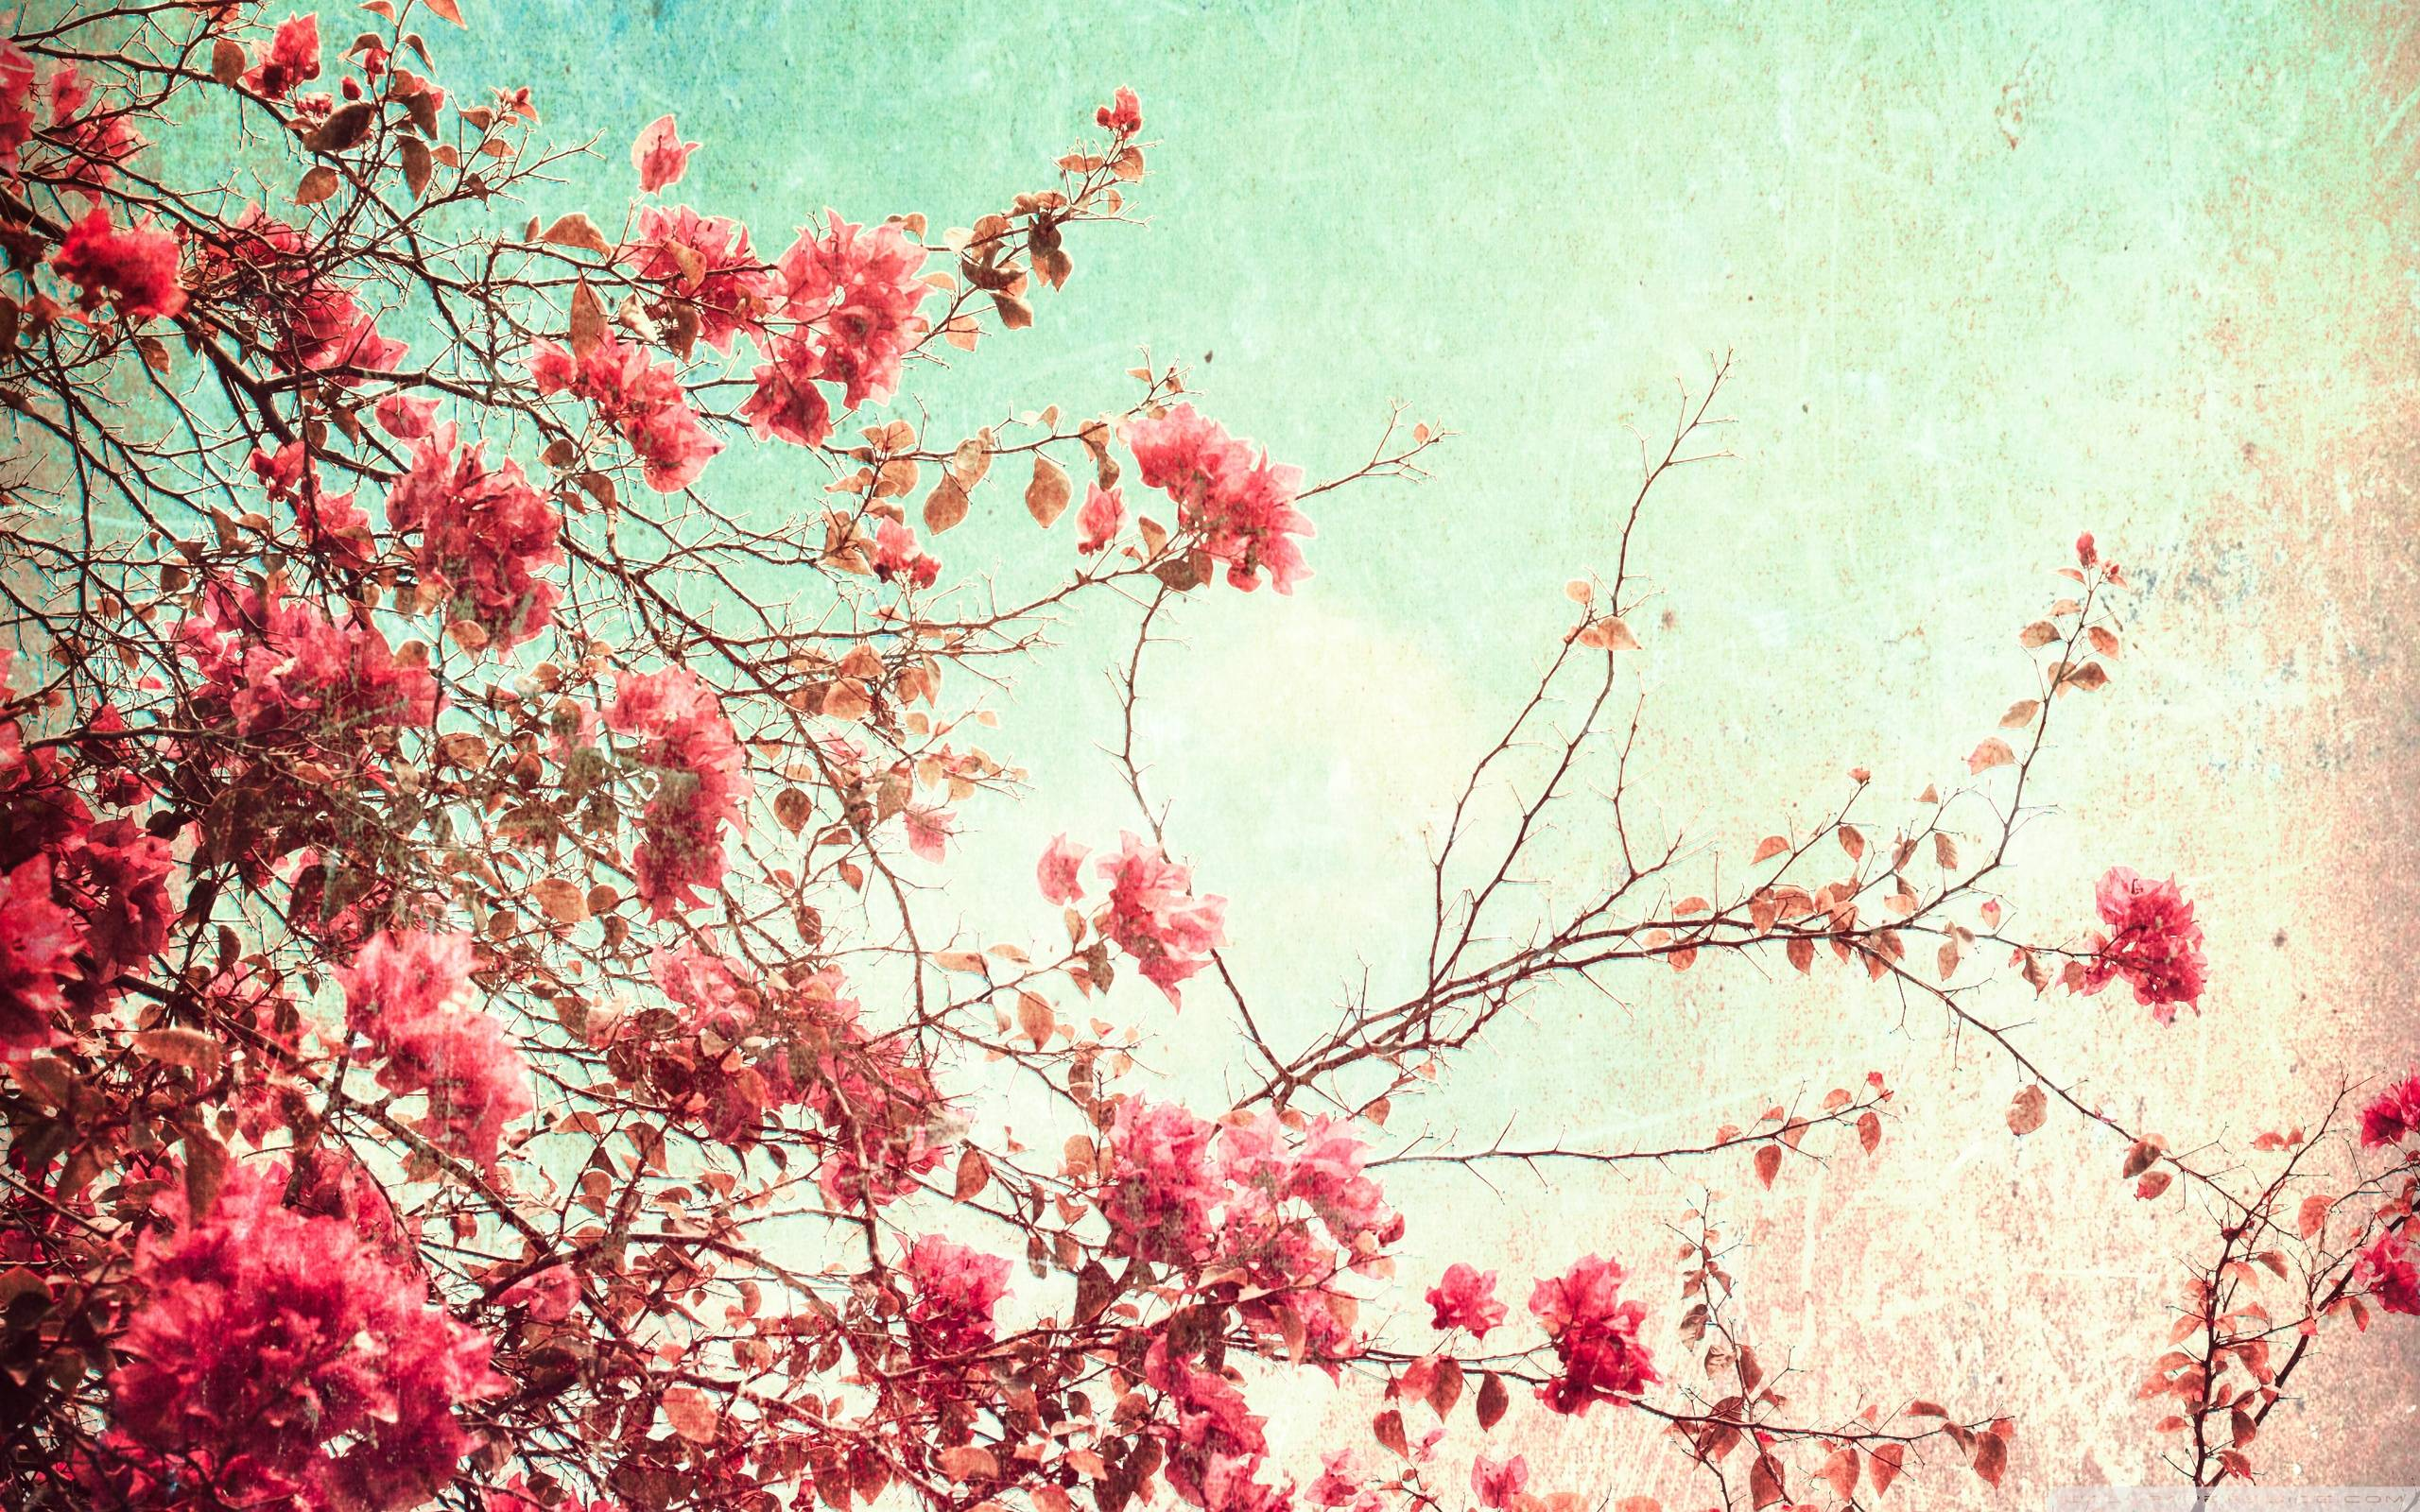 Vintage floral iphone wallpaper tumblr - Desktop Vintage Wallpaper Flowers